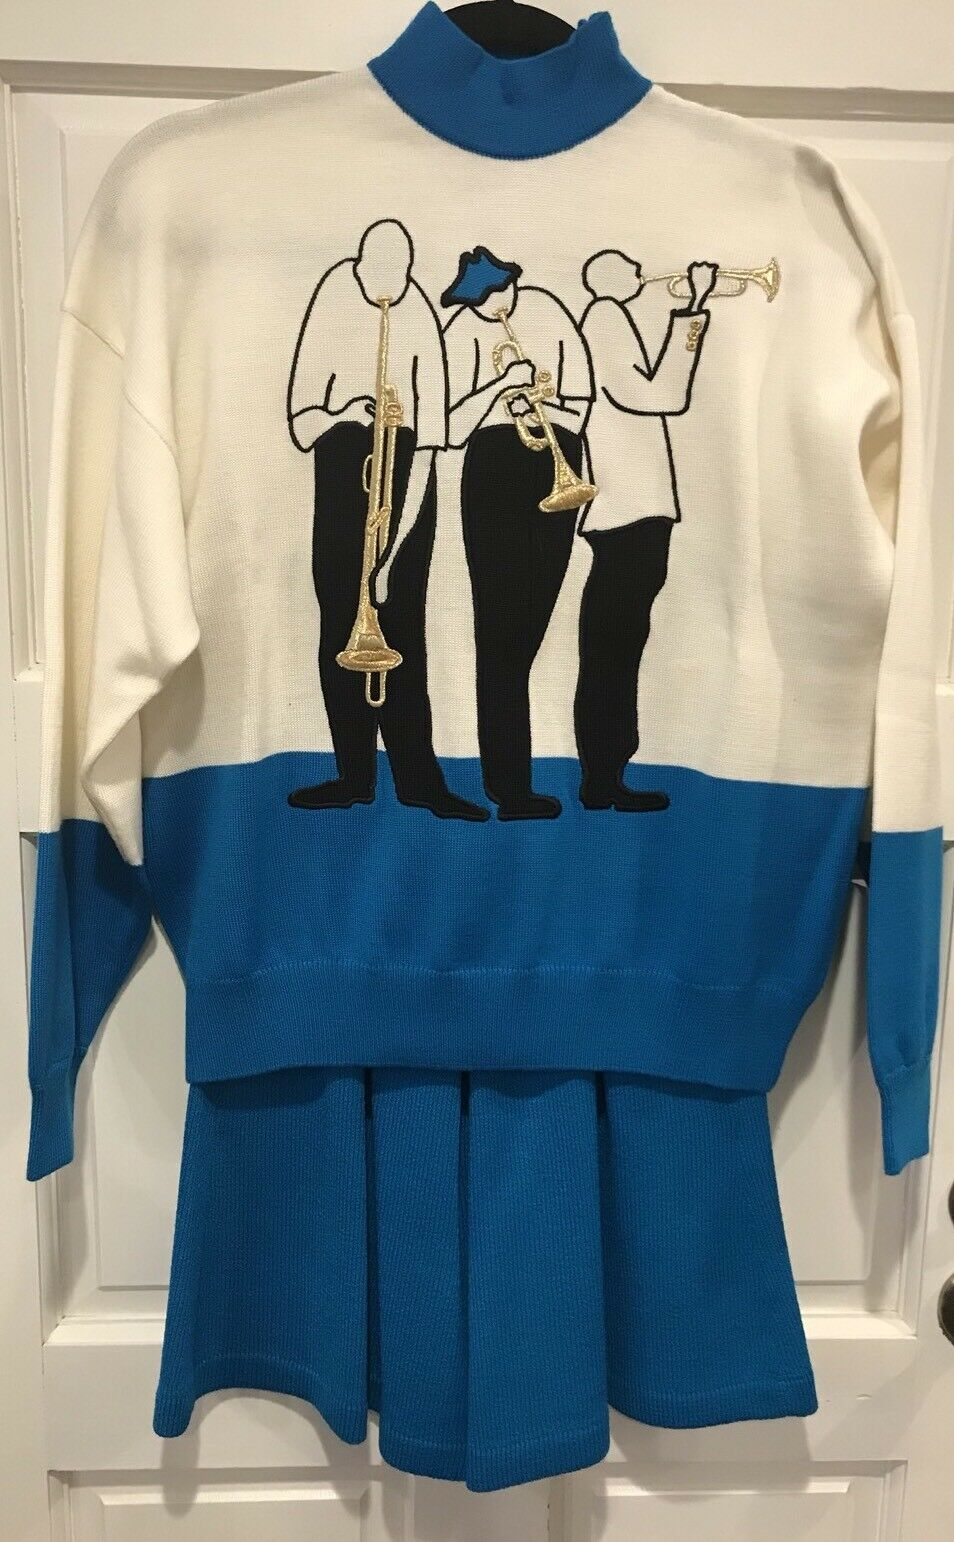 St Johns Separates Women Size 4 Sweater Short Set Jazz Music Players Embroidered